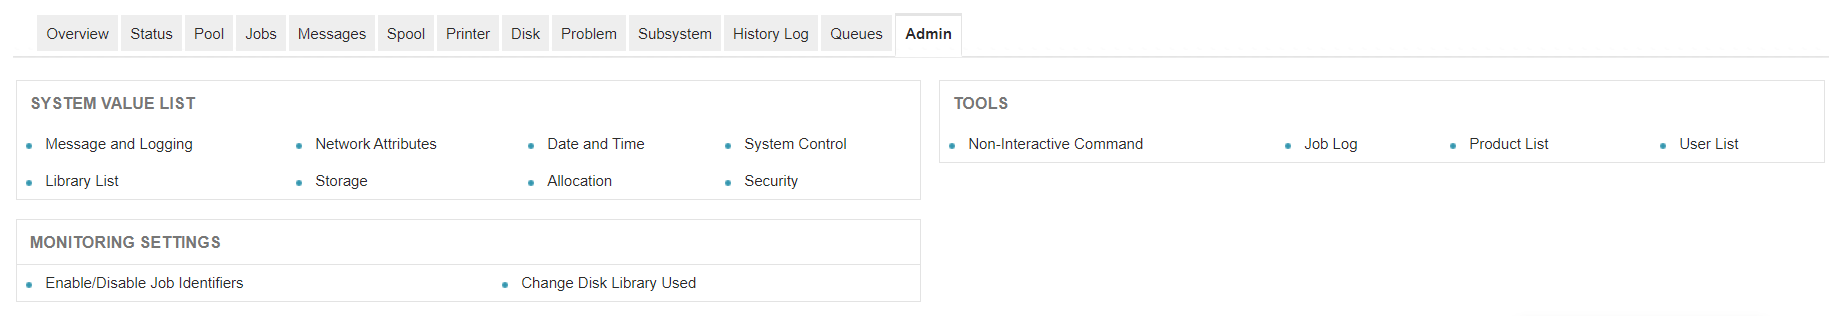 AS400 Server Monitoring Tools - ManageEngine Applications Manager